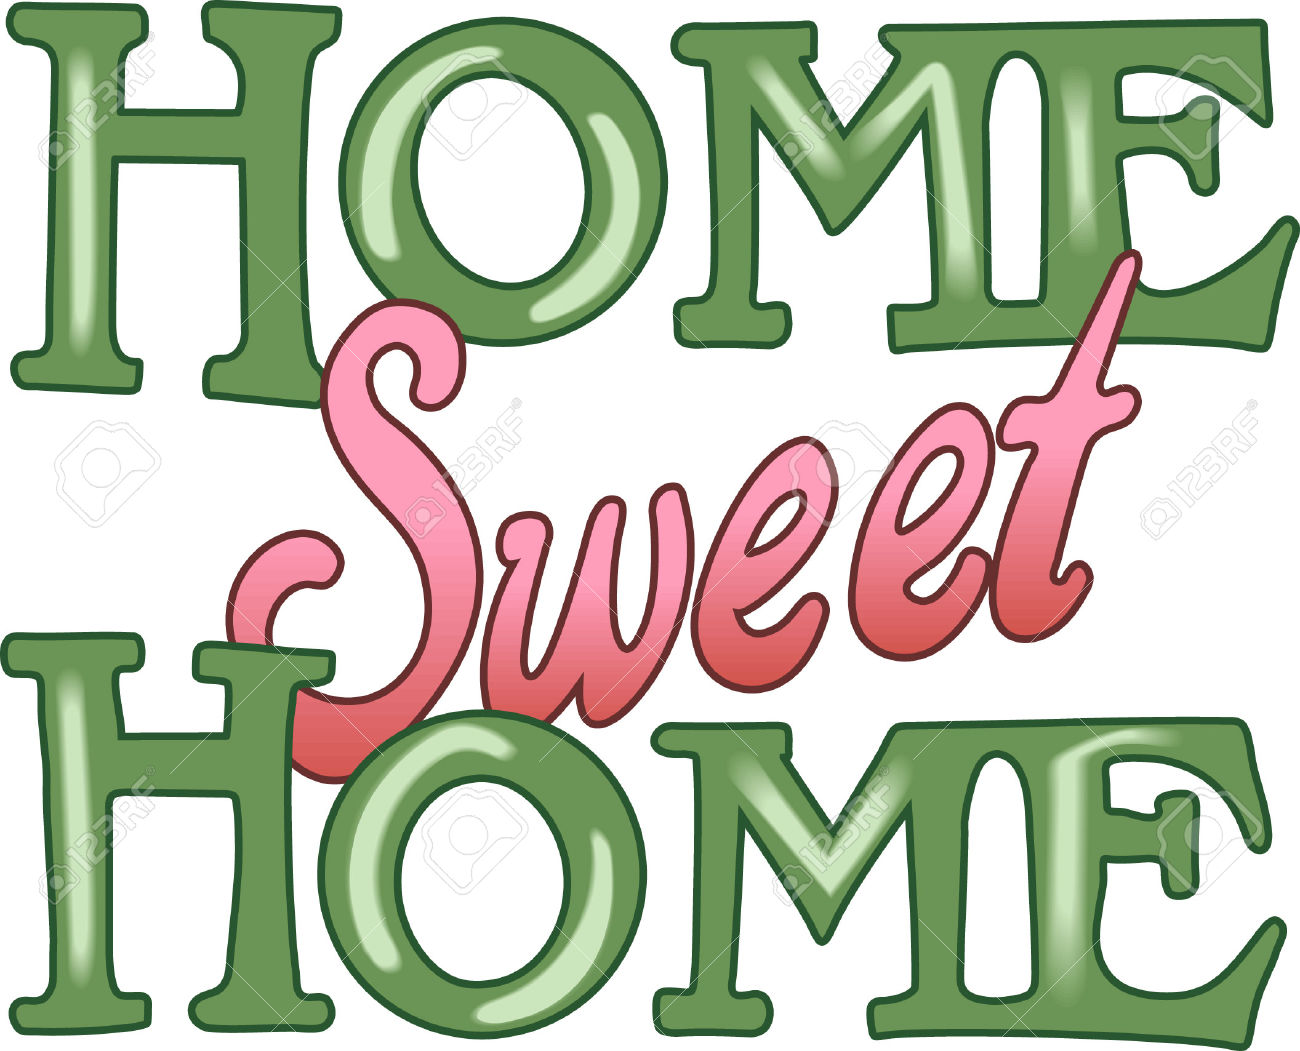 Welcom home clipart stock Welcome home clipart - Clip Art Library stock